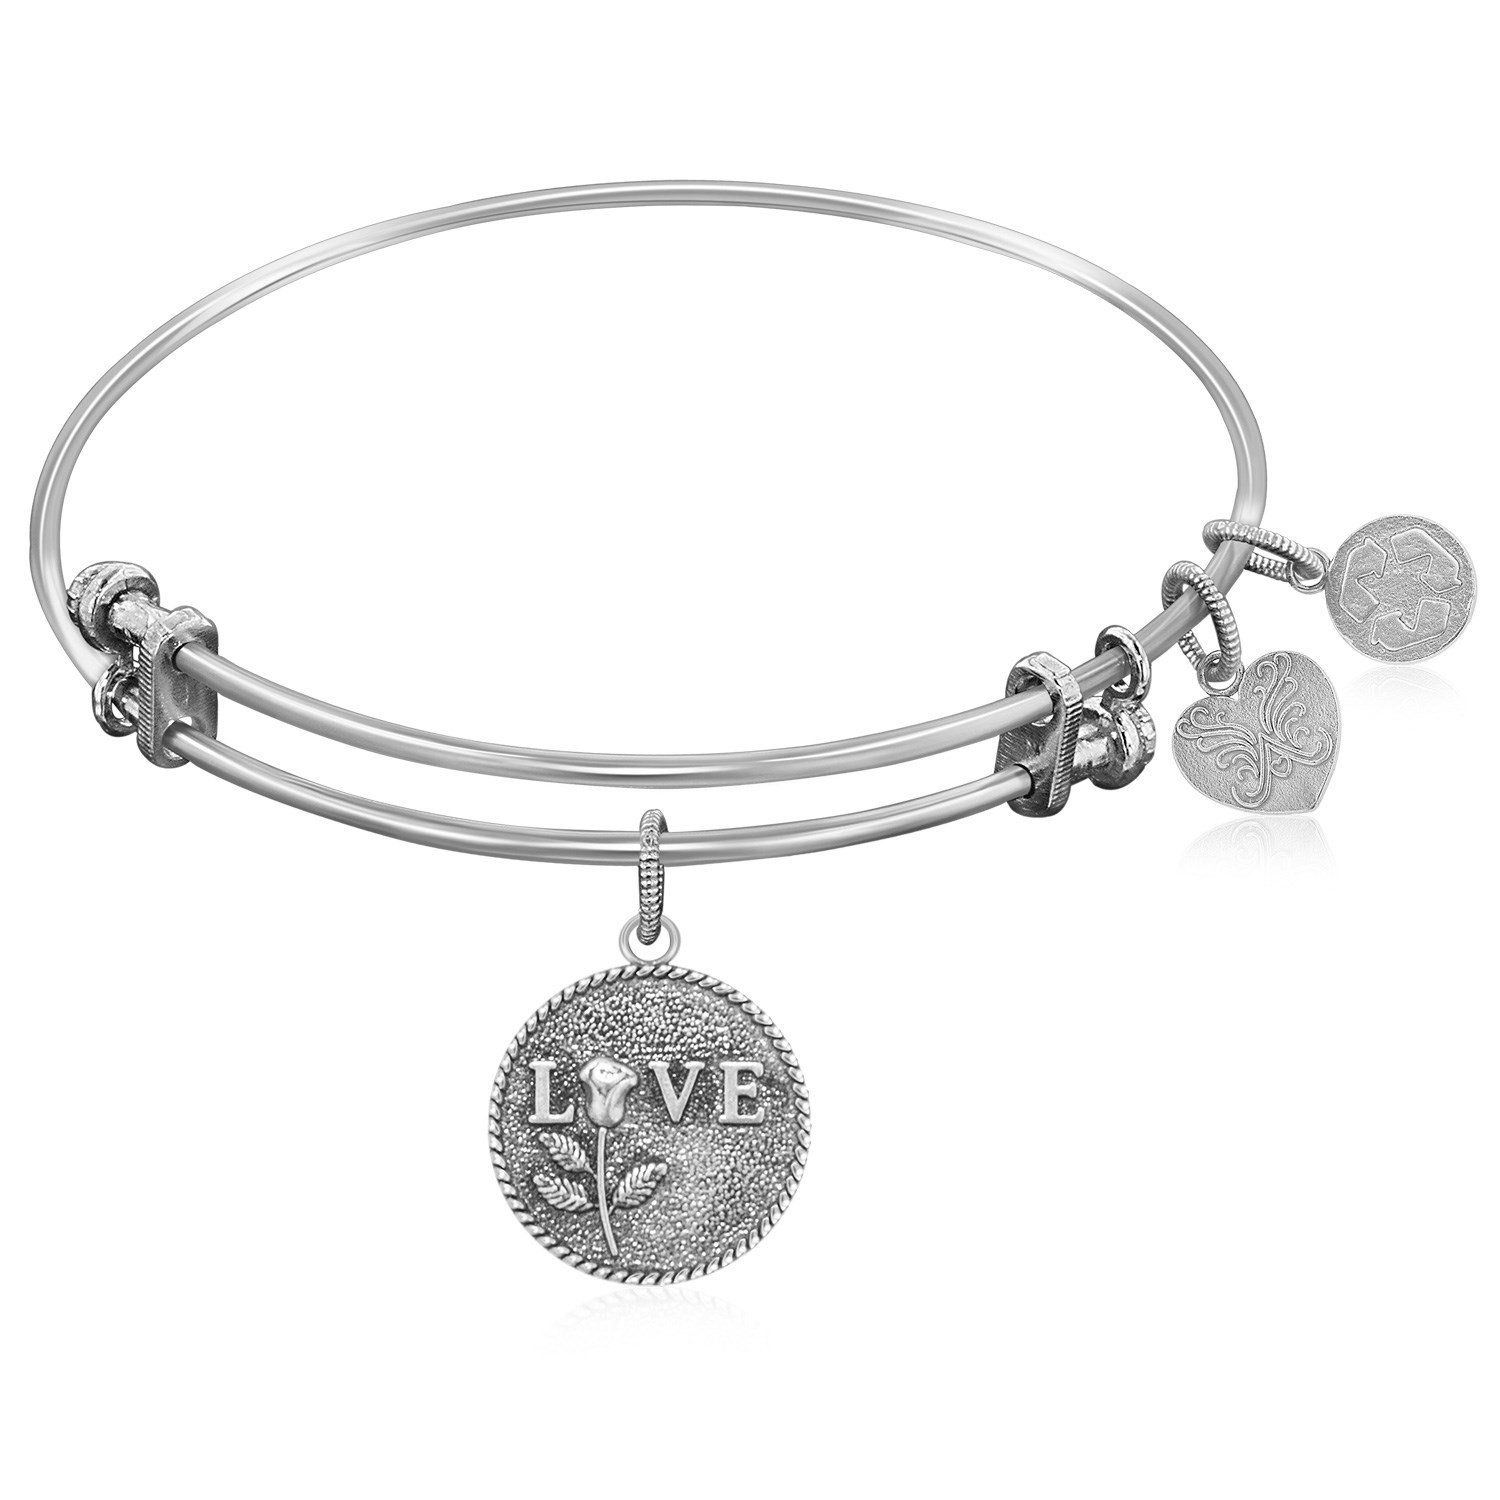 Expandable Bangle in White Tone Brass with Love Special